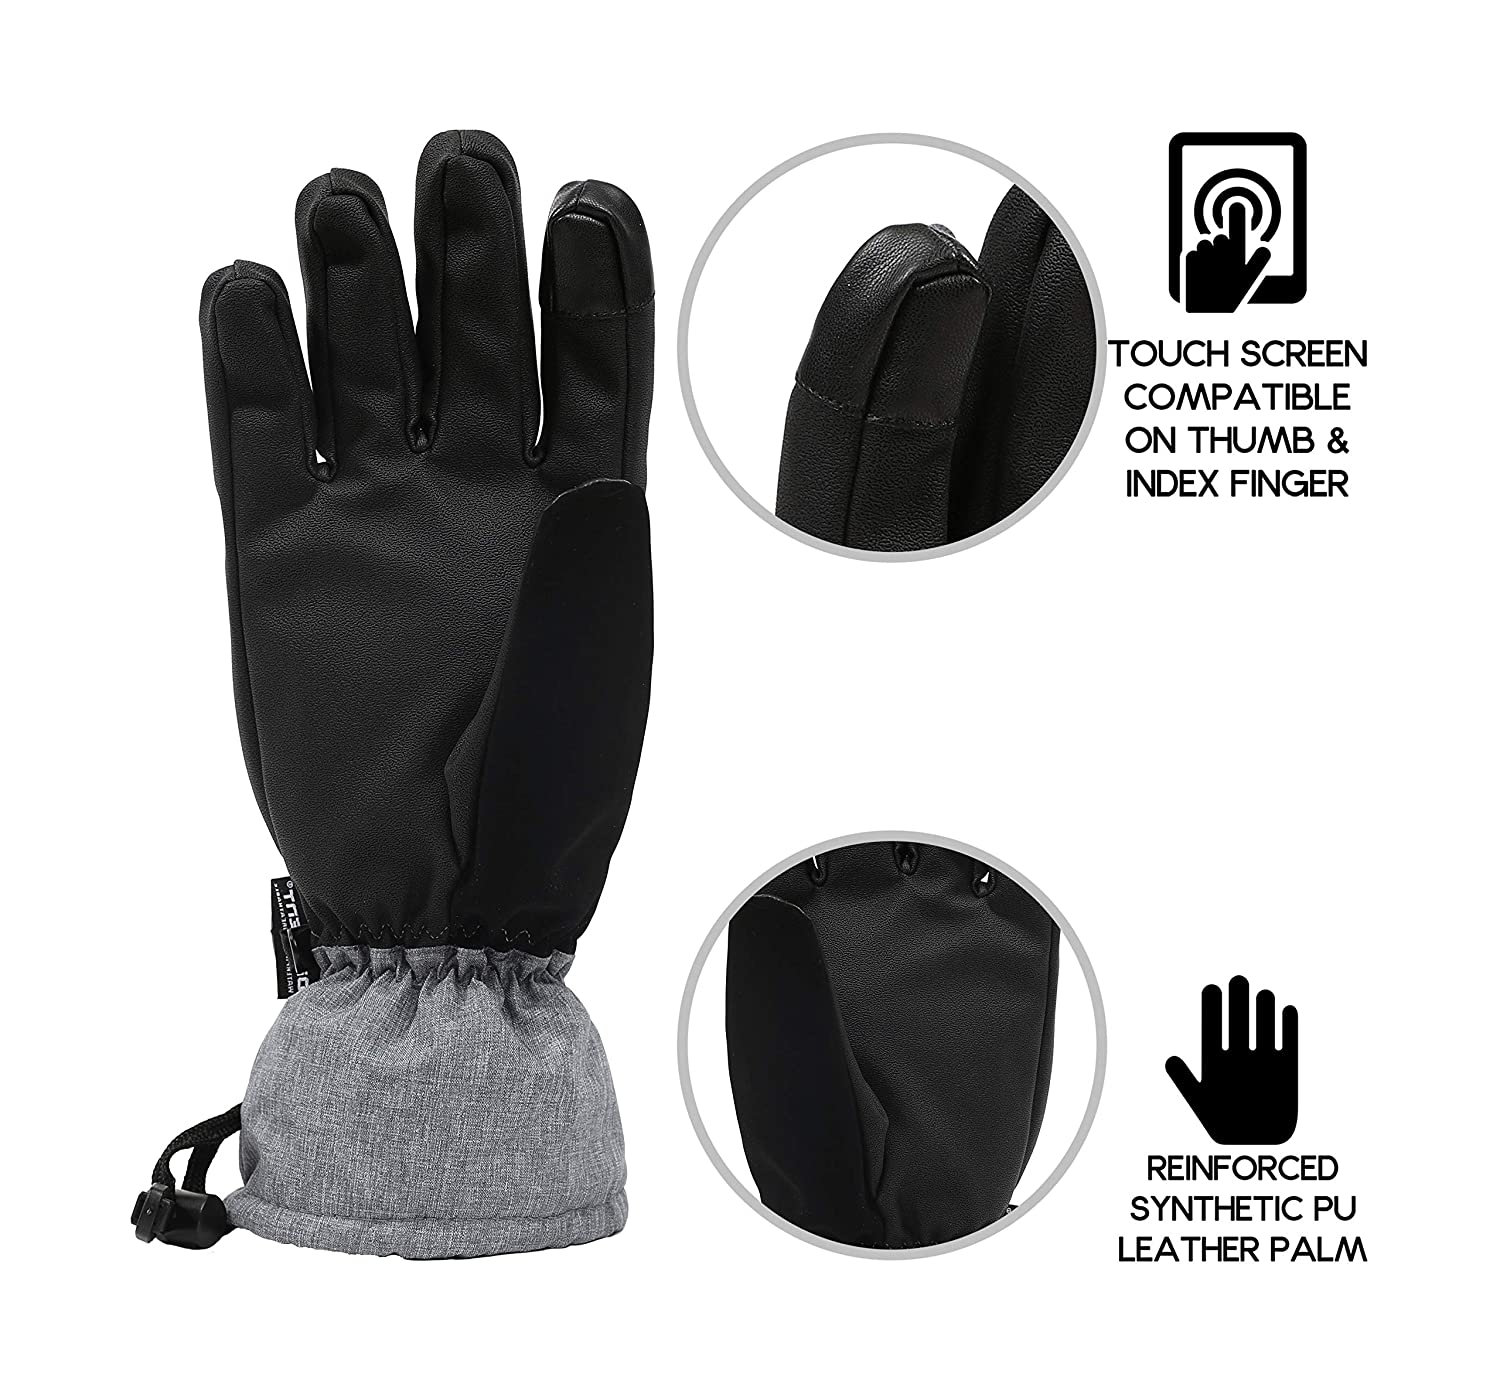 accsa Ski Gloves Women Winter Waterproof Snowboad Snow 3M Thinsulate Warm Touchscreen Cold Weather